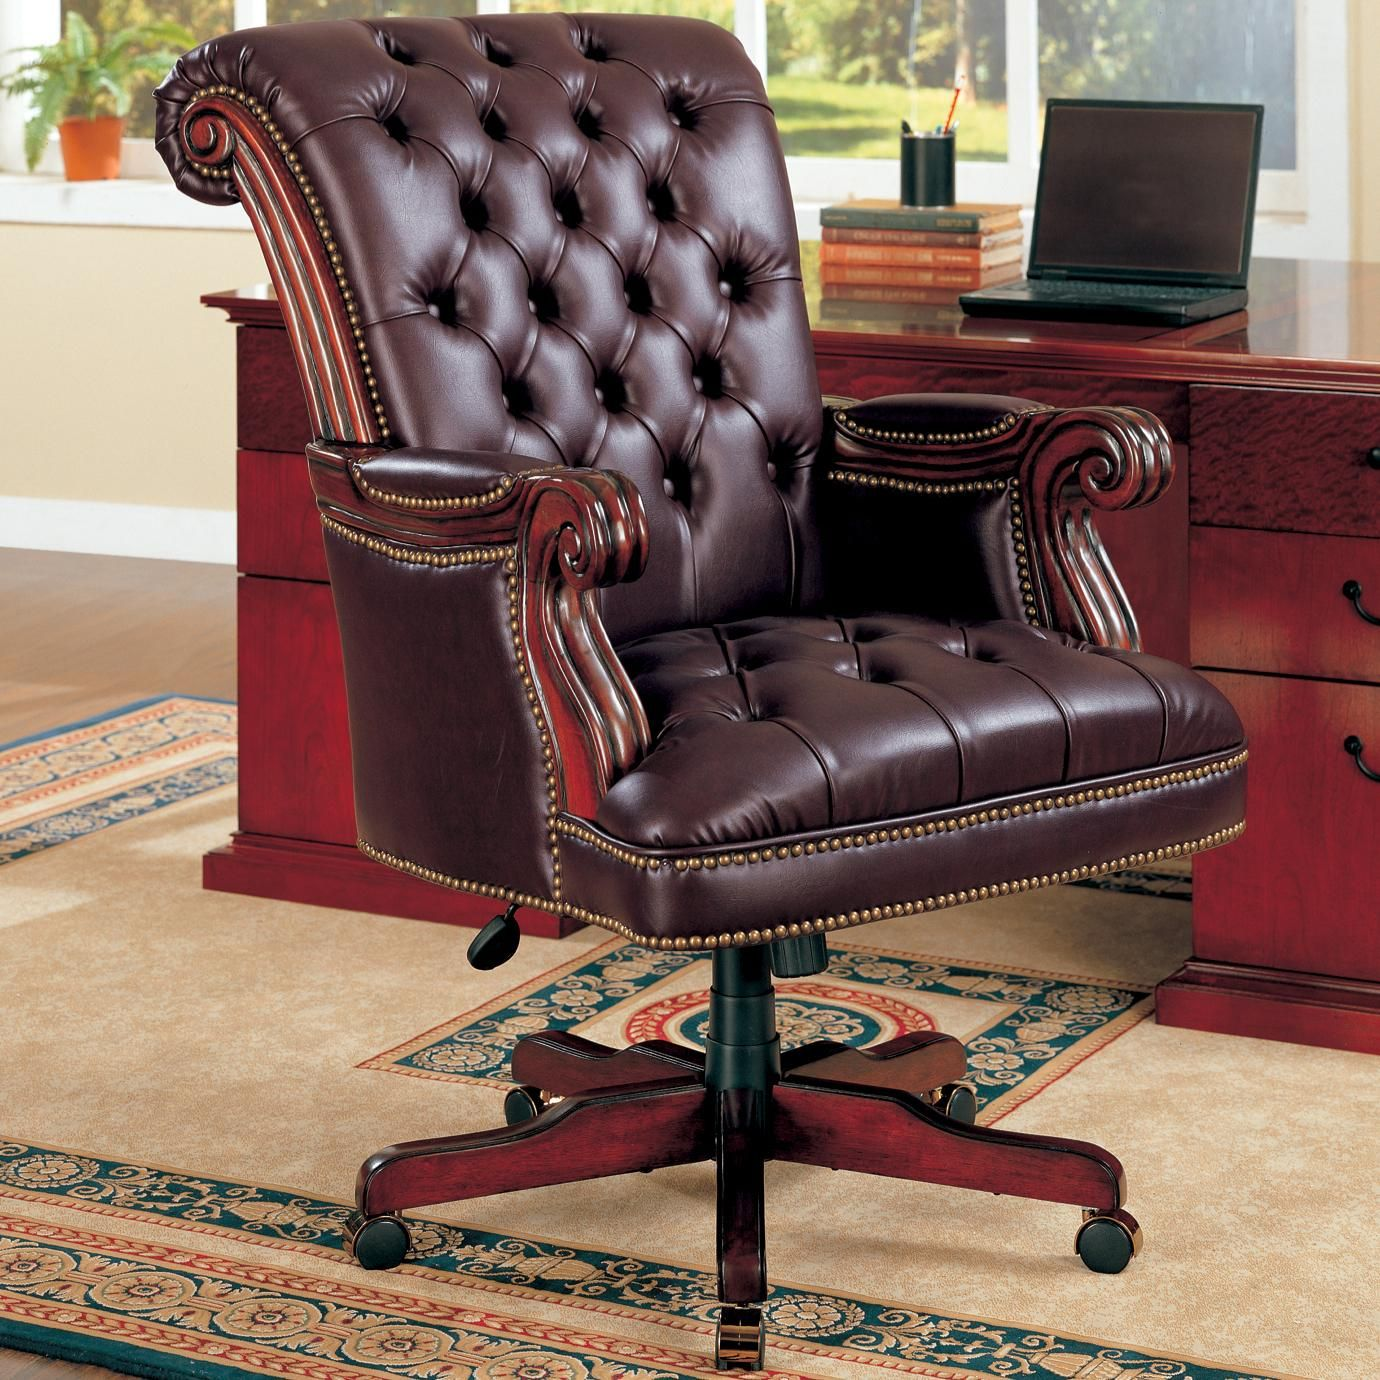 brown leather office chairs. Lowest Price Online On All Coaster Office Chairs Traditional Executive Chair In Burgundy - 800142 Brown Leather